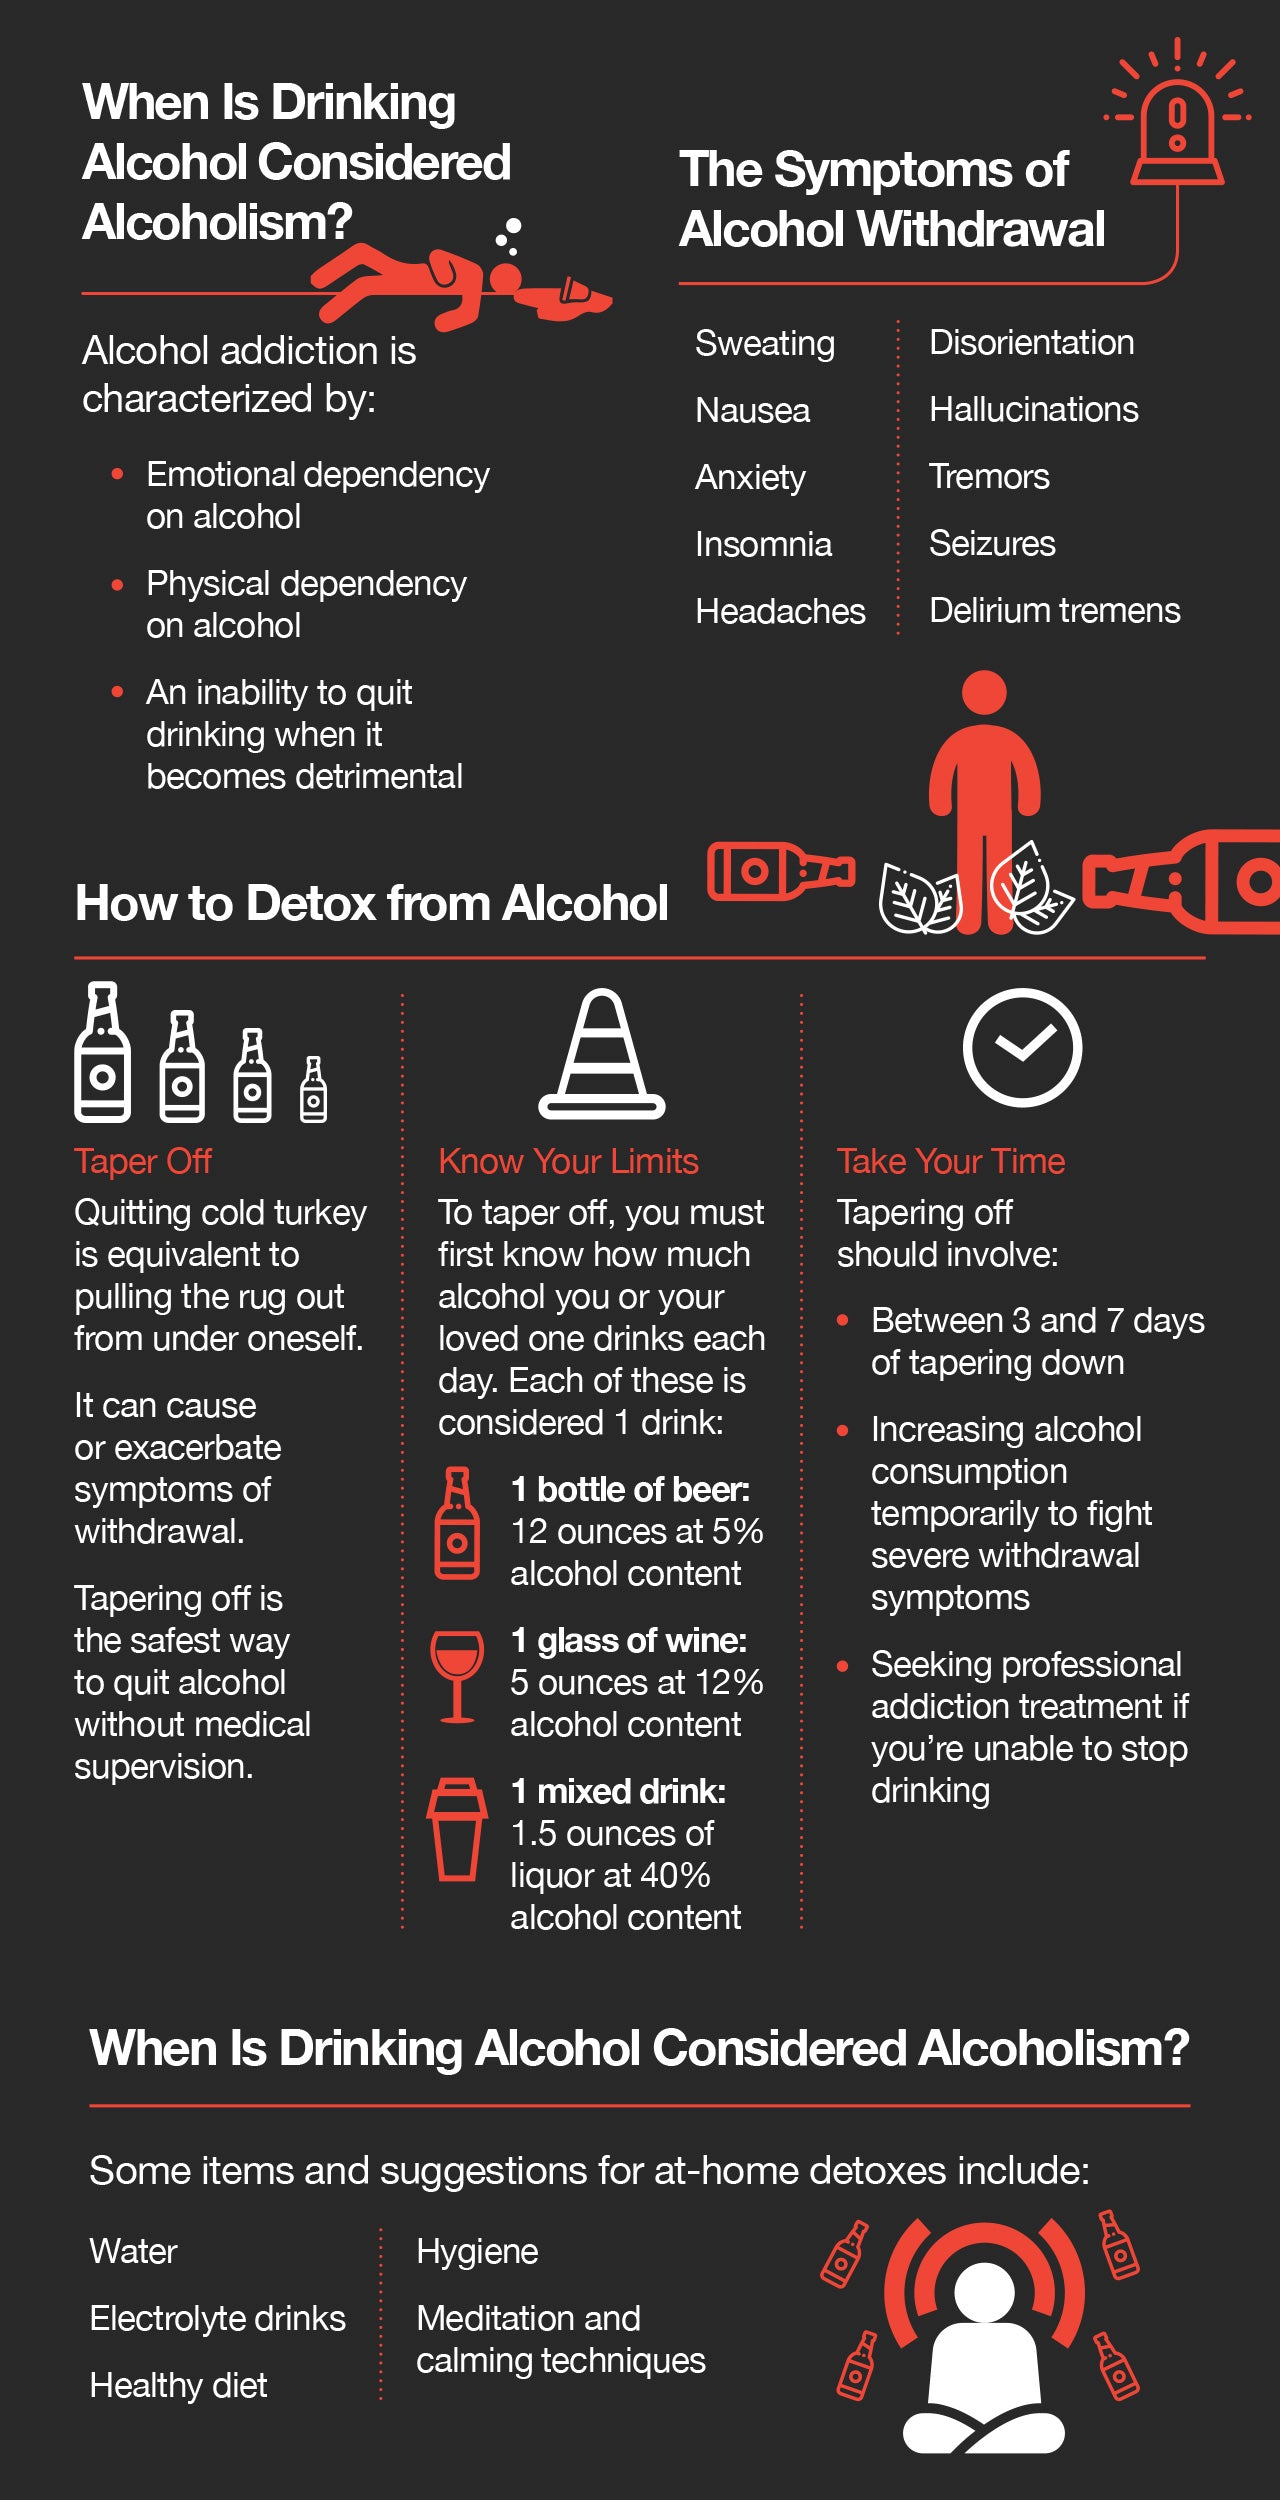 How to detox from alcohol.